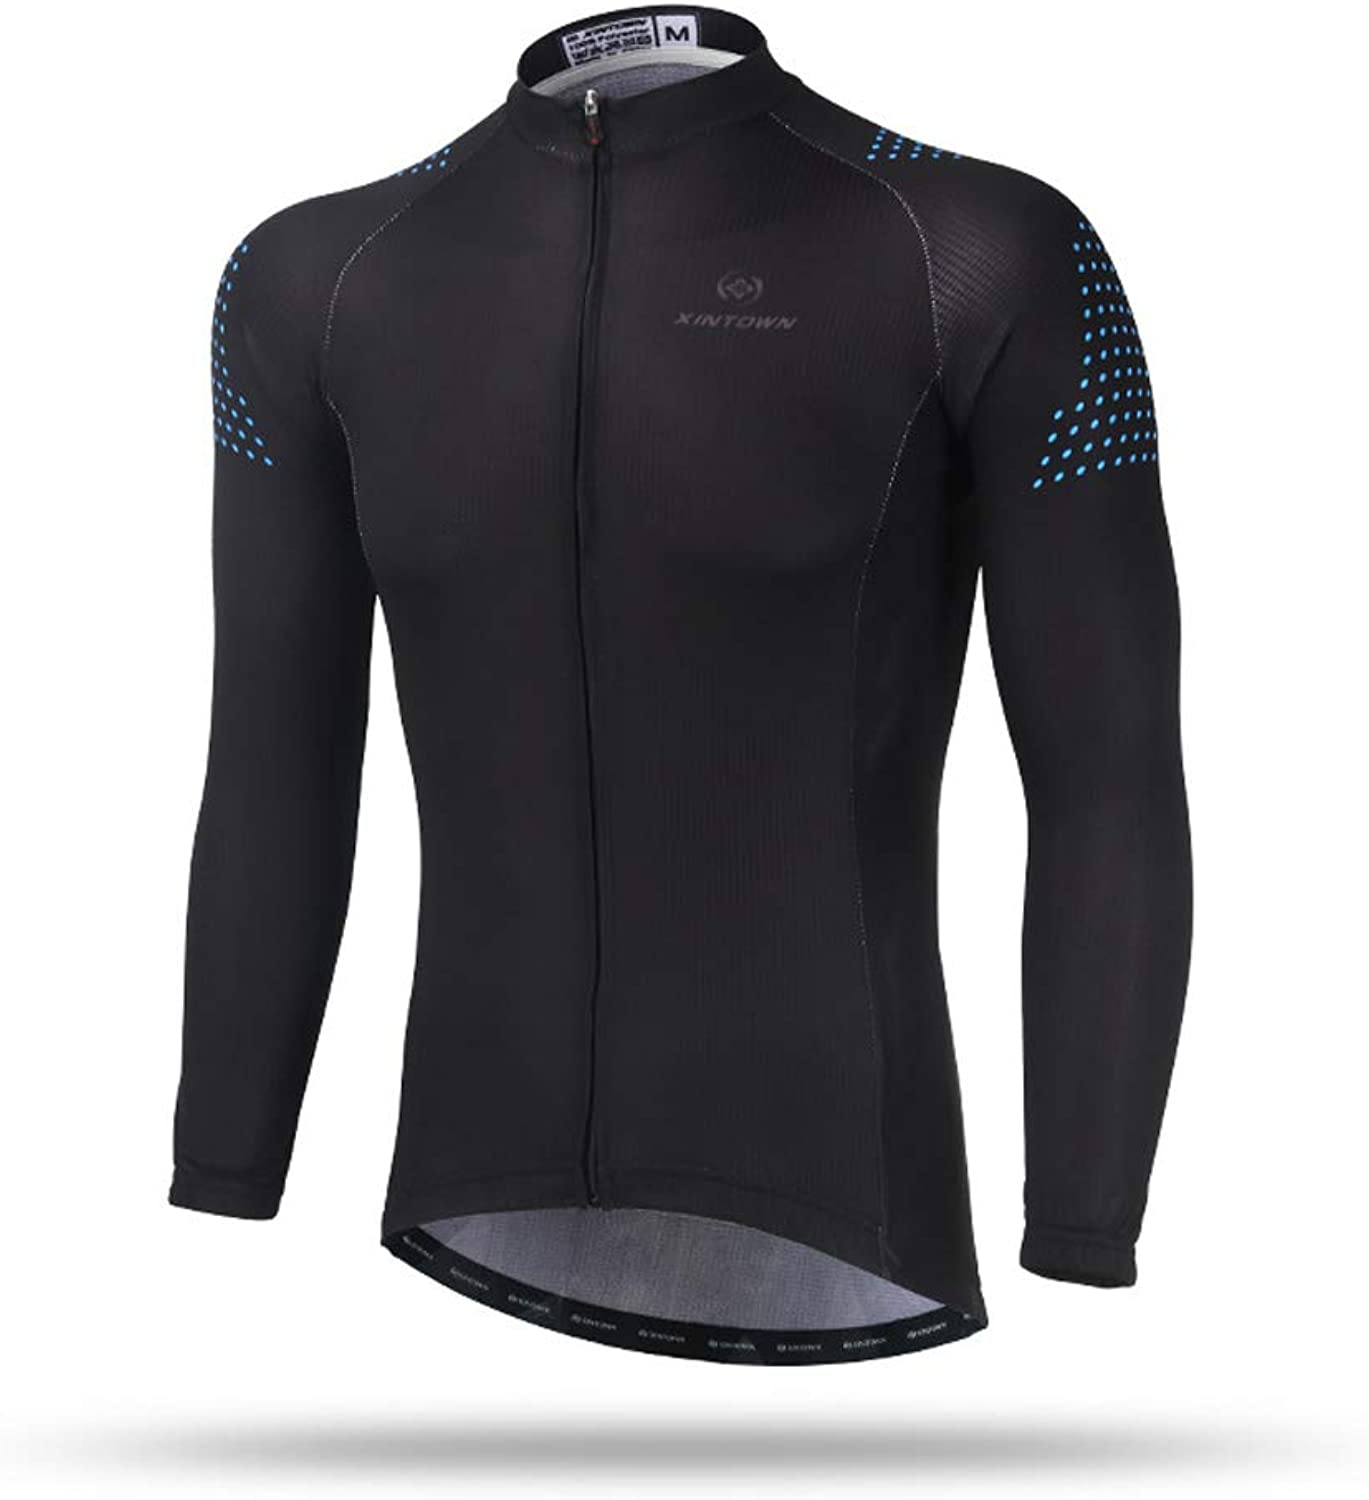 Pinjeer Pure Black Men's High Elasticity Men's Only Shirt Cycling Jersey Clothing Breathable Spring Autumn Outdoor Road Bike Riding Jersey Men Long Sleeve Shirt (Size   M)